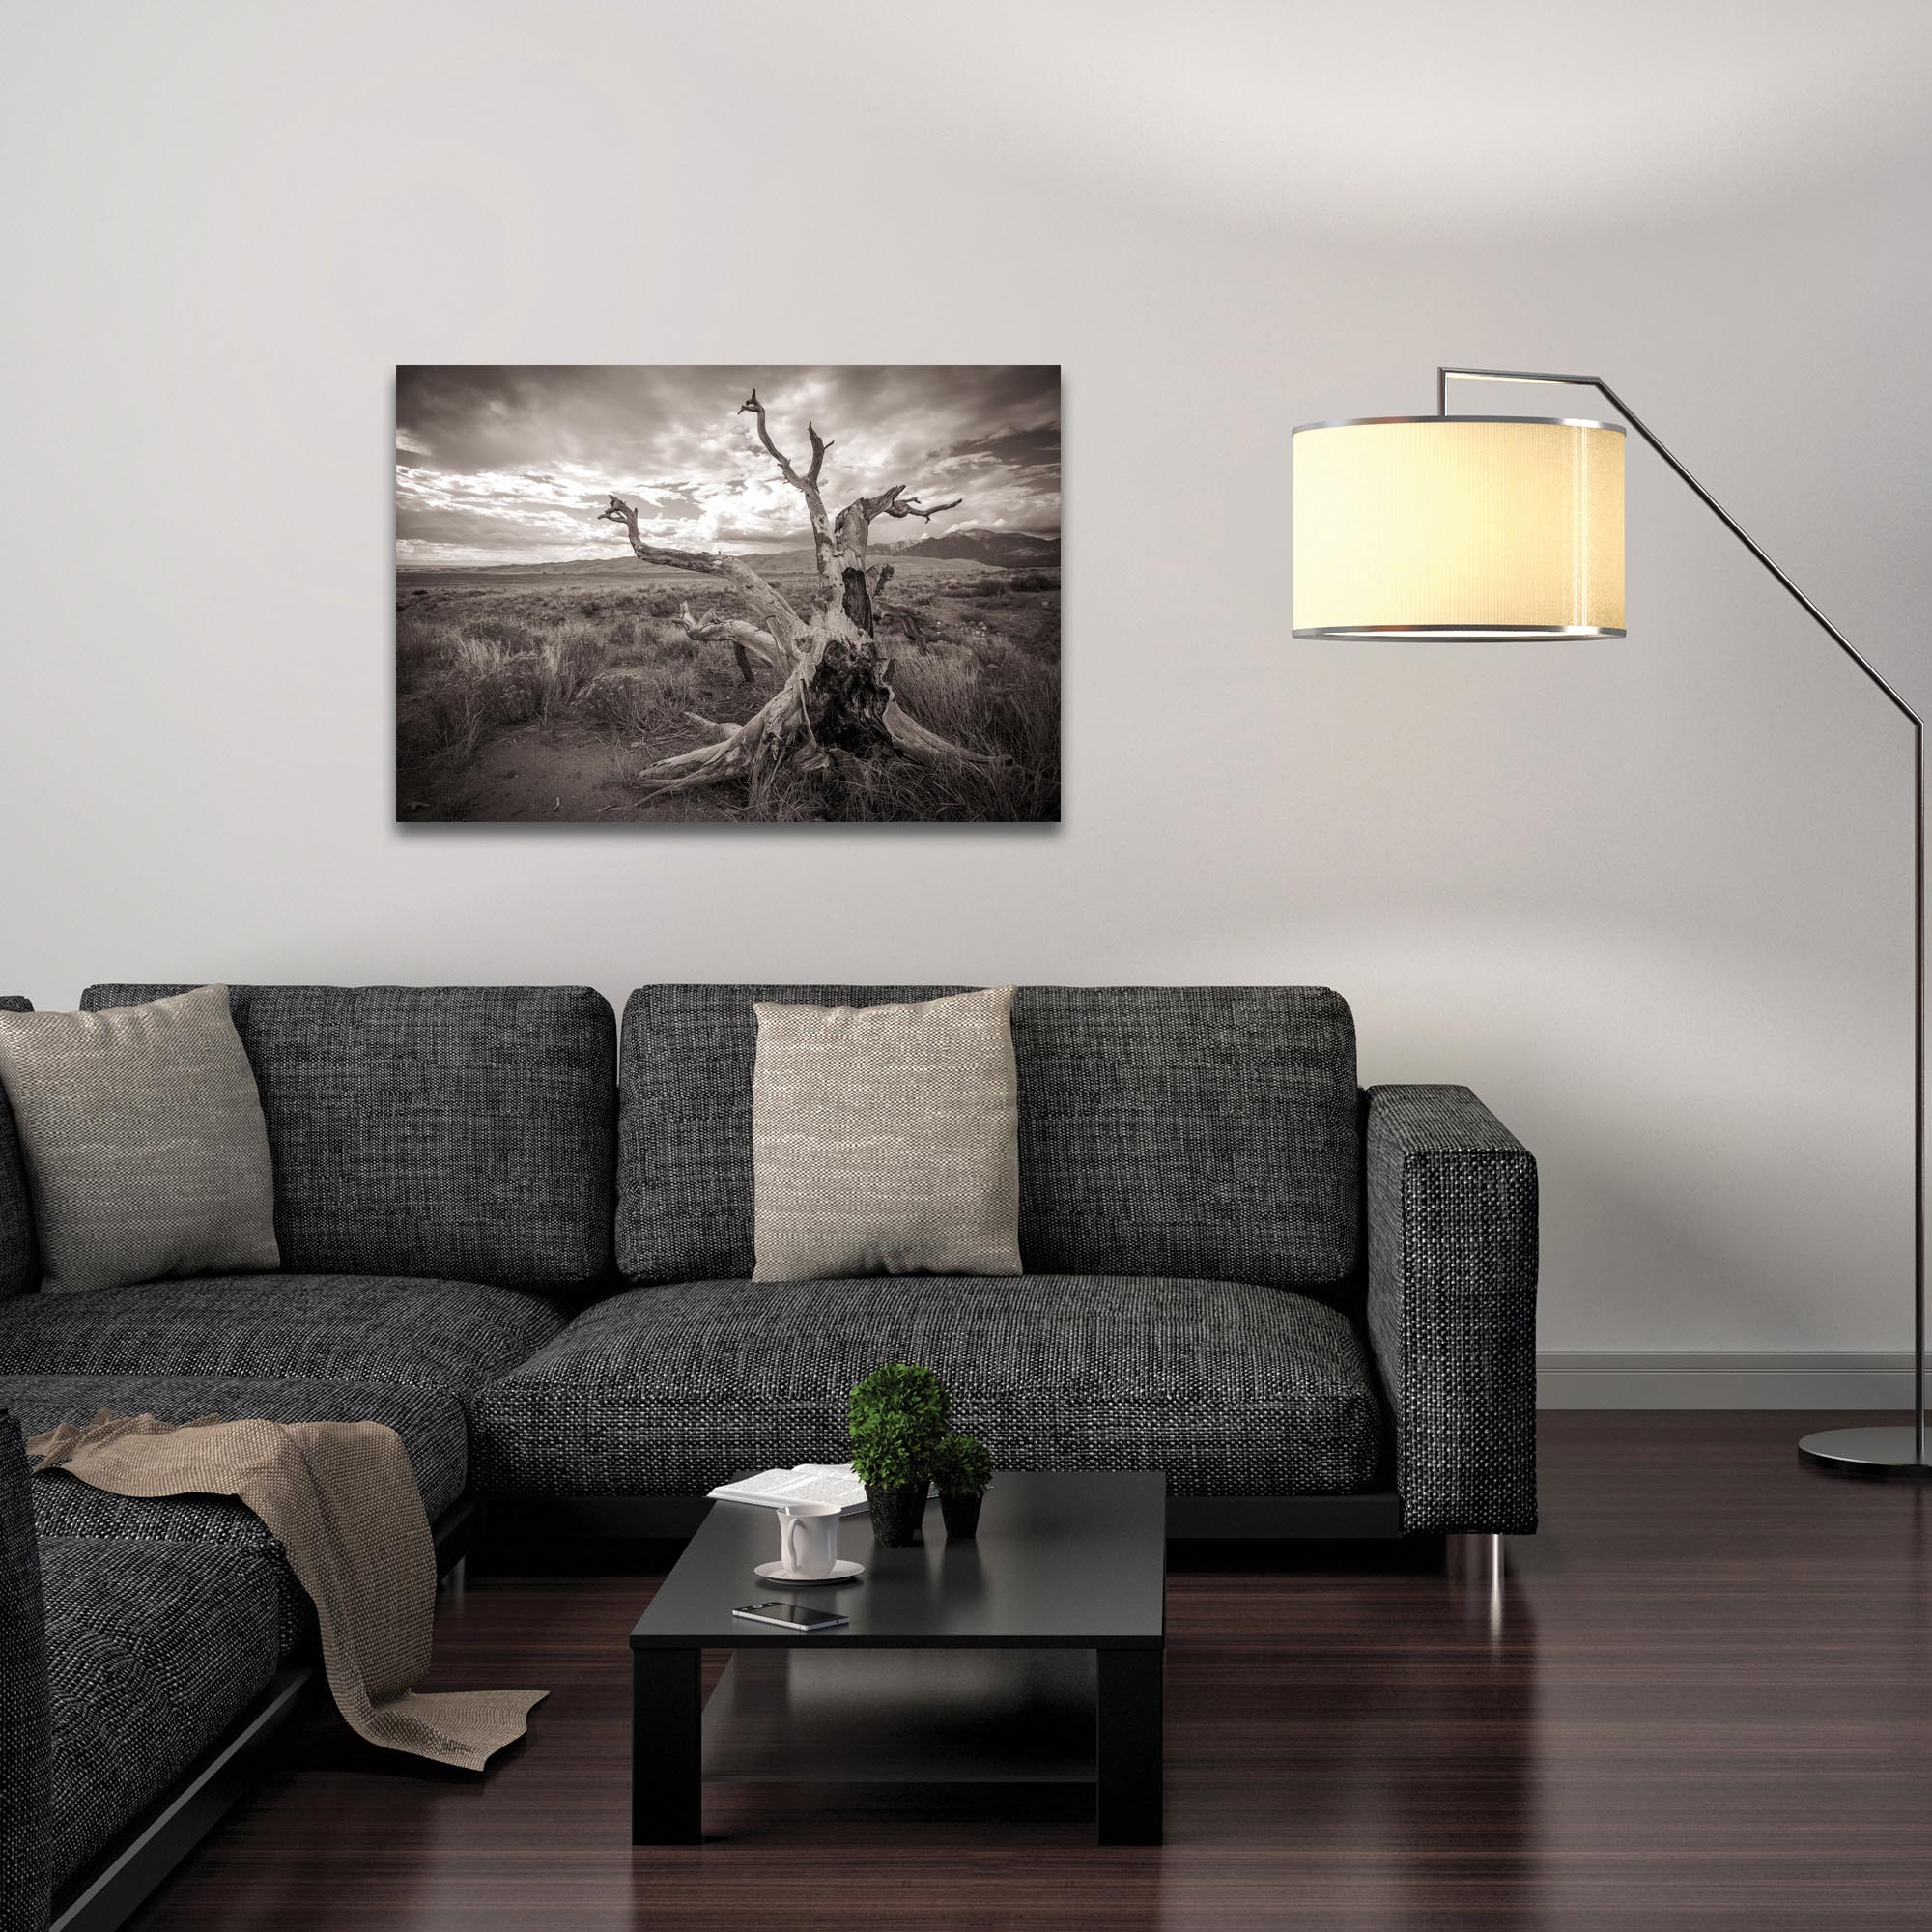 Film Noir Wall Art 'Knotty Valley' - Black & White Photography on Metal or Plexiglass - Lifestyle View